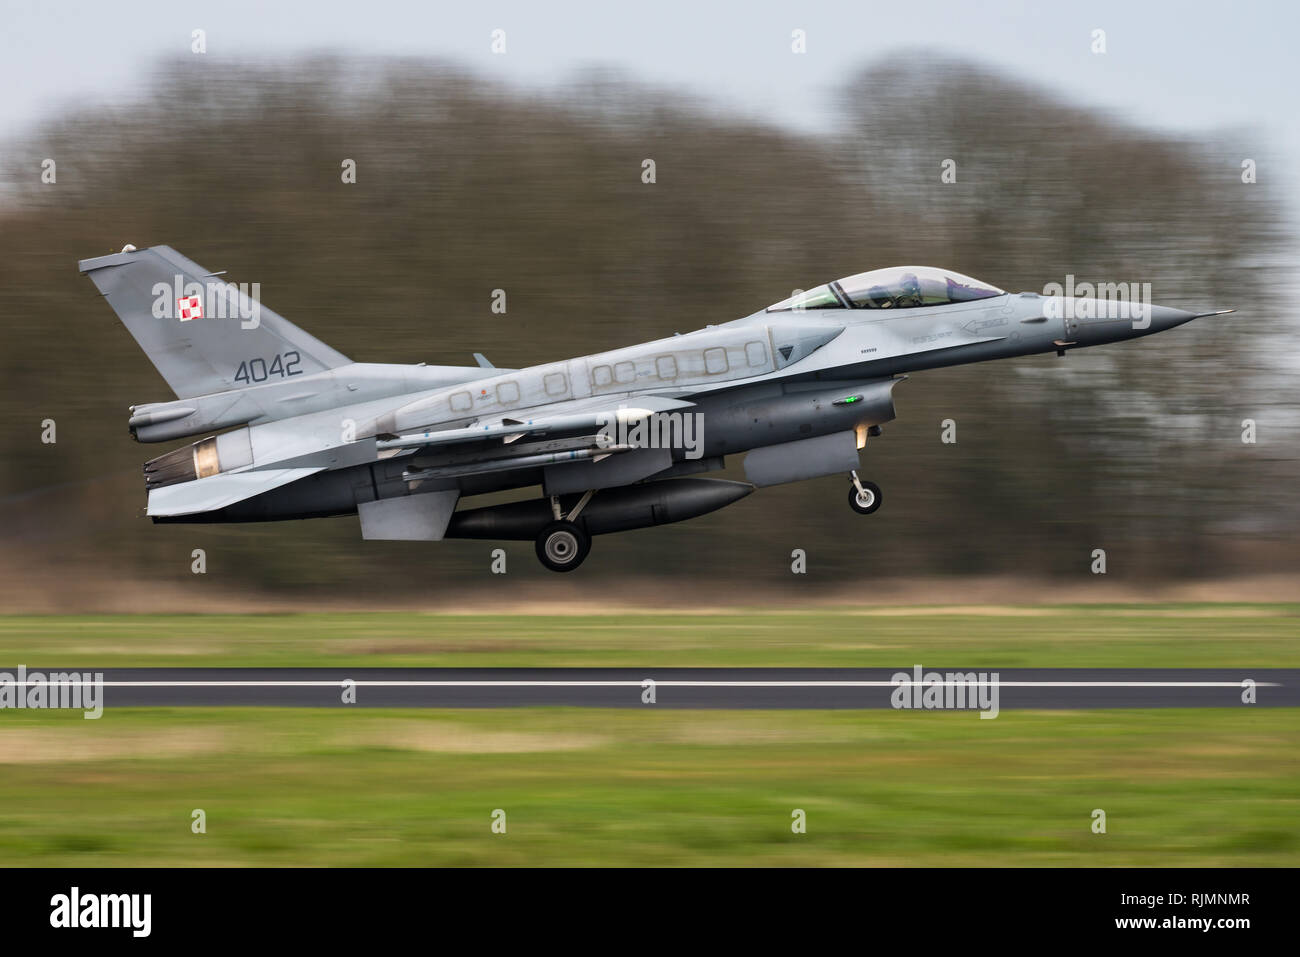 A Lockheed Martin F-16D fighter jet of the Polish Air Force. - Stock Image